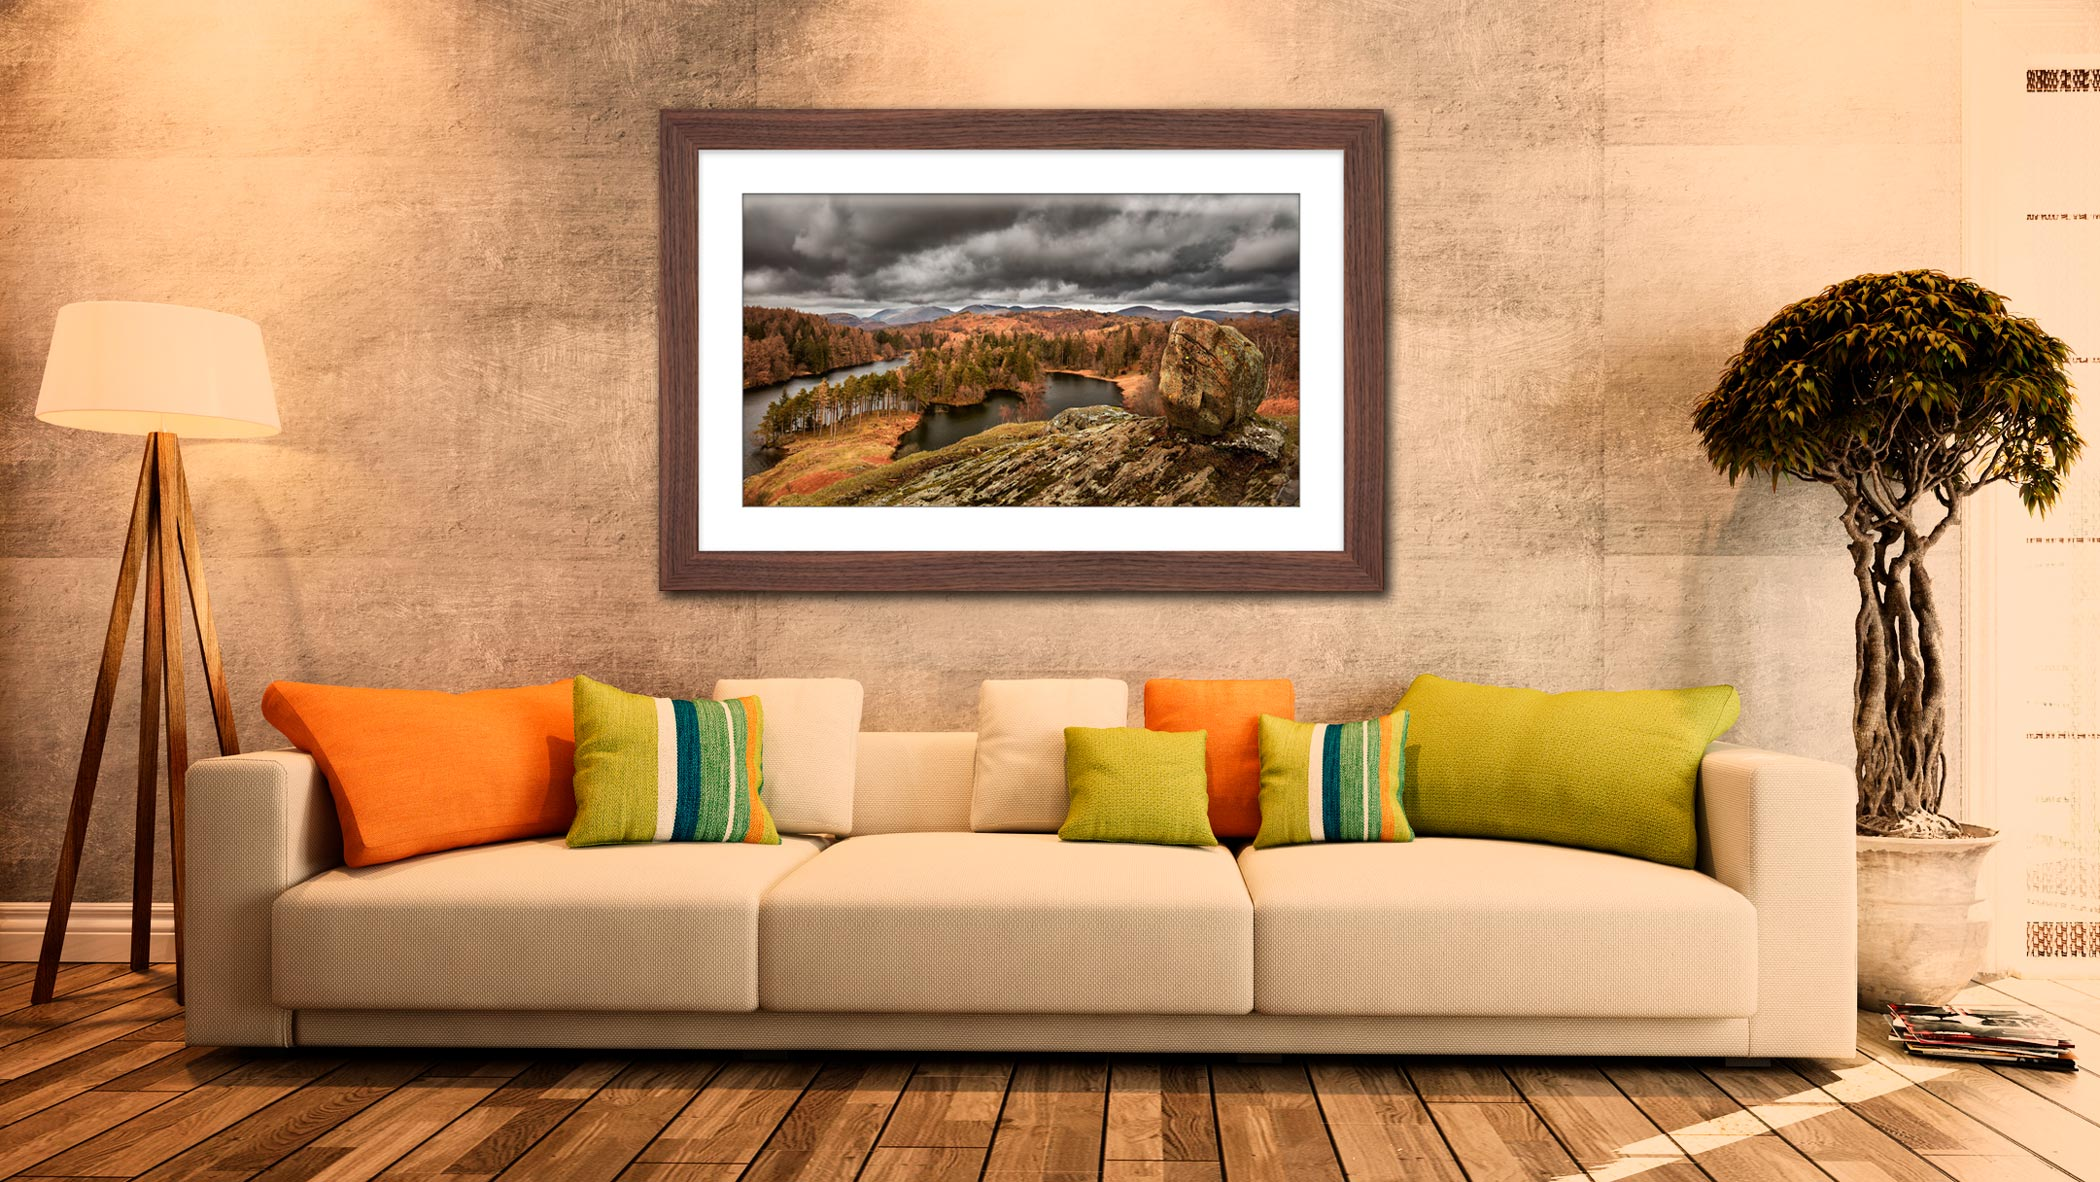 Grey Skies Over Tarn Hows - Framed Print with Mount on Wall